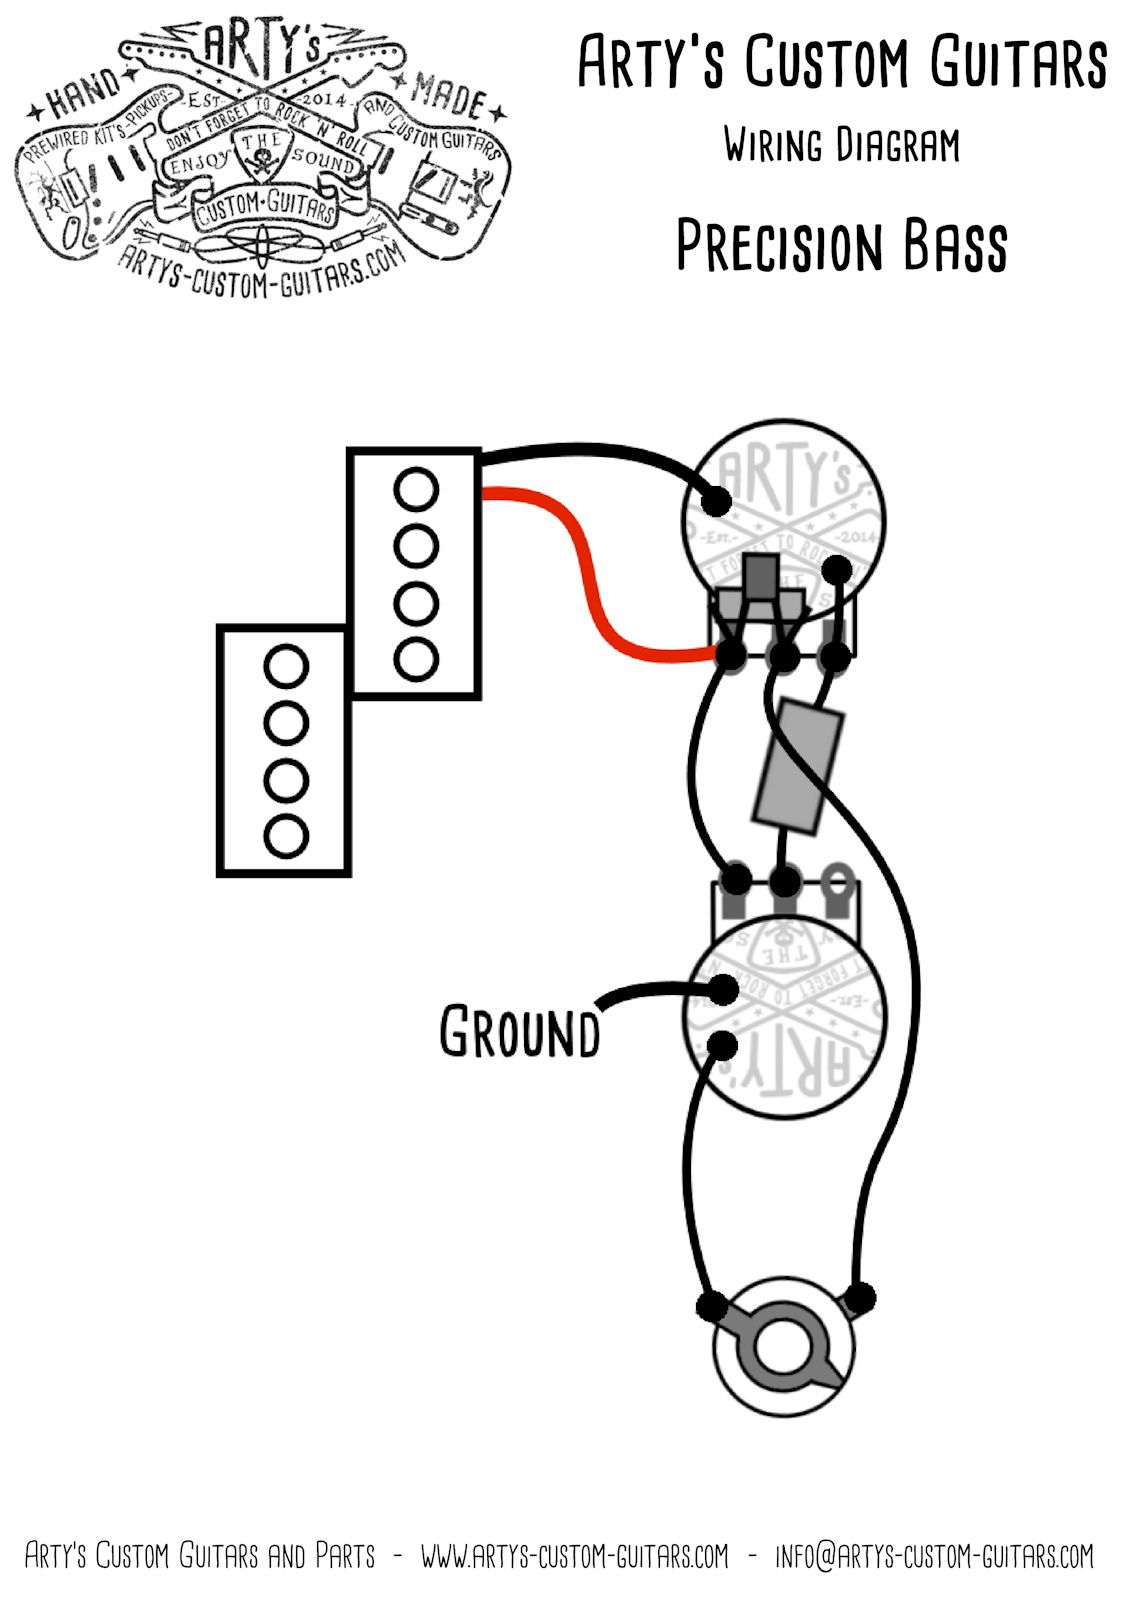 hight resolution of arty s custom guitars vintage wiring prewired kit wiring diagram assembly harness artys precision bass p